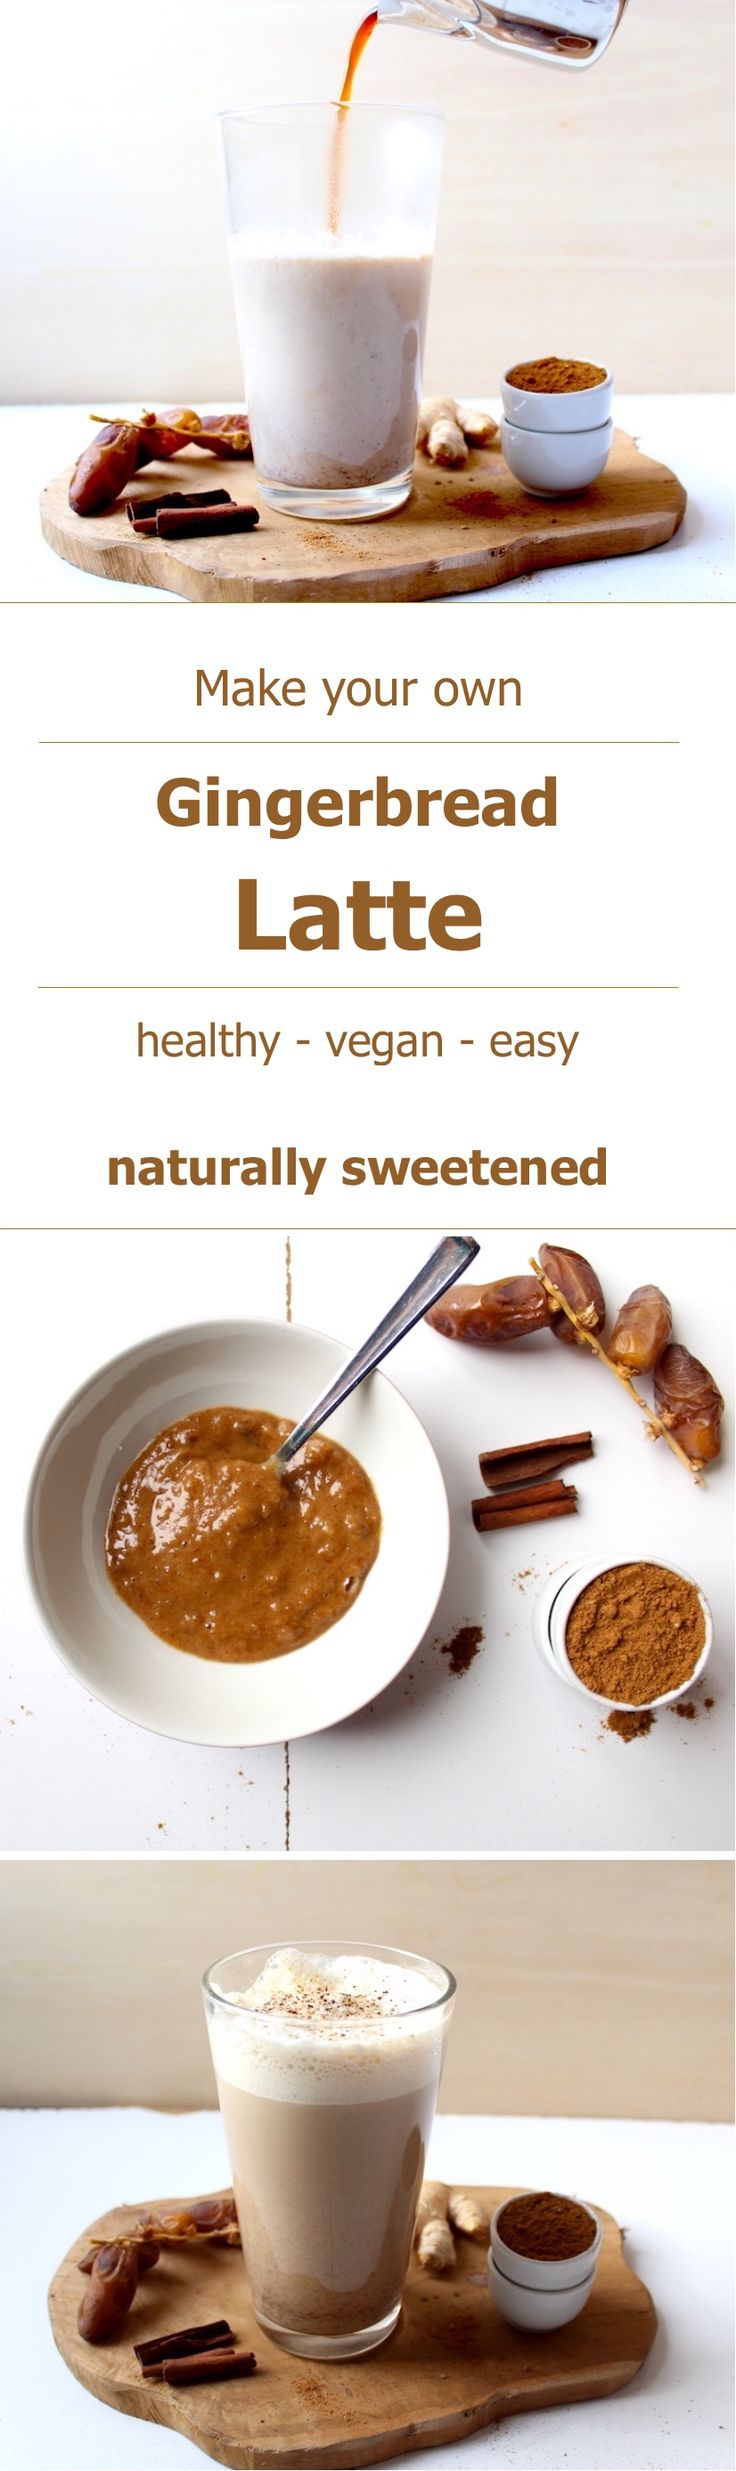 Make yourself this super delicious gingerbread latte. This recipe is healthy, naturally sweetened, easy and vegan! #vegan #gingerbread #latte #drinks